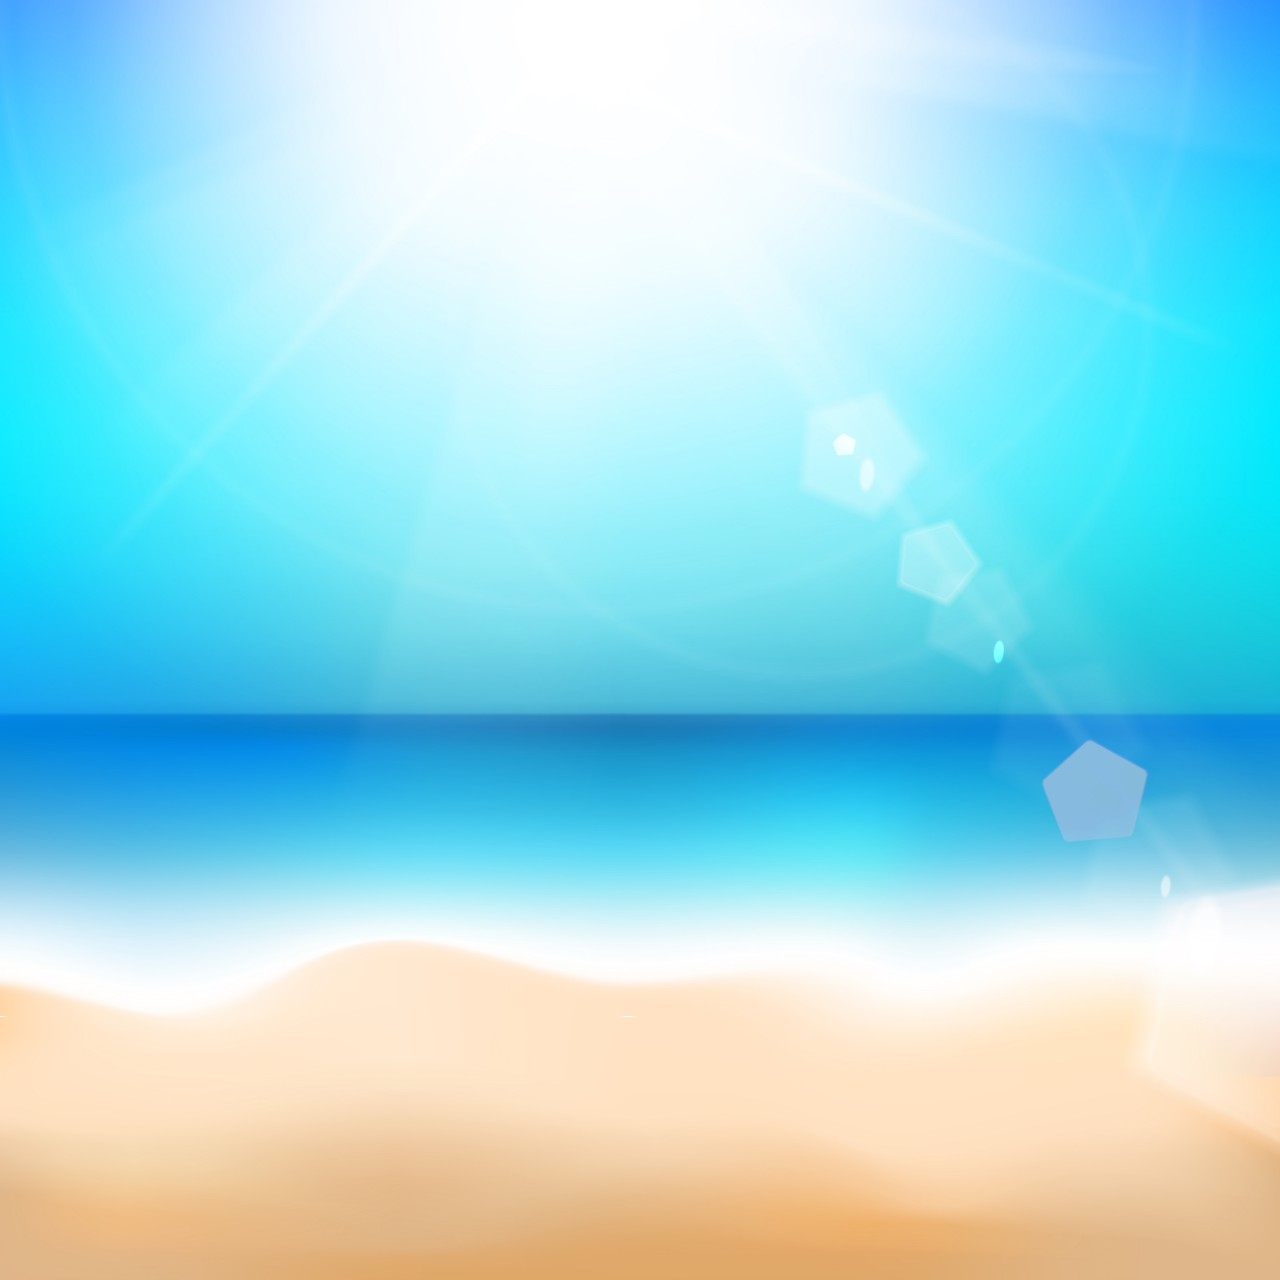 Sun and air, sea and sand